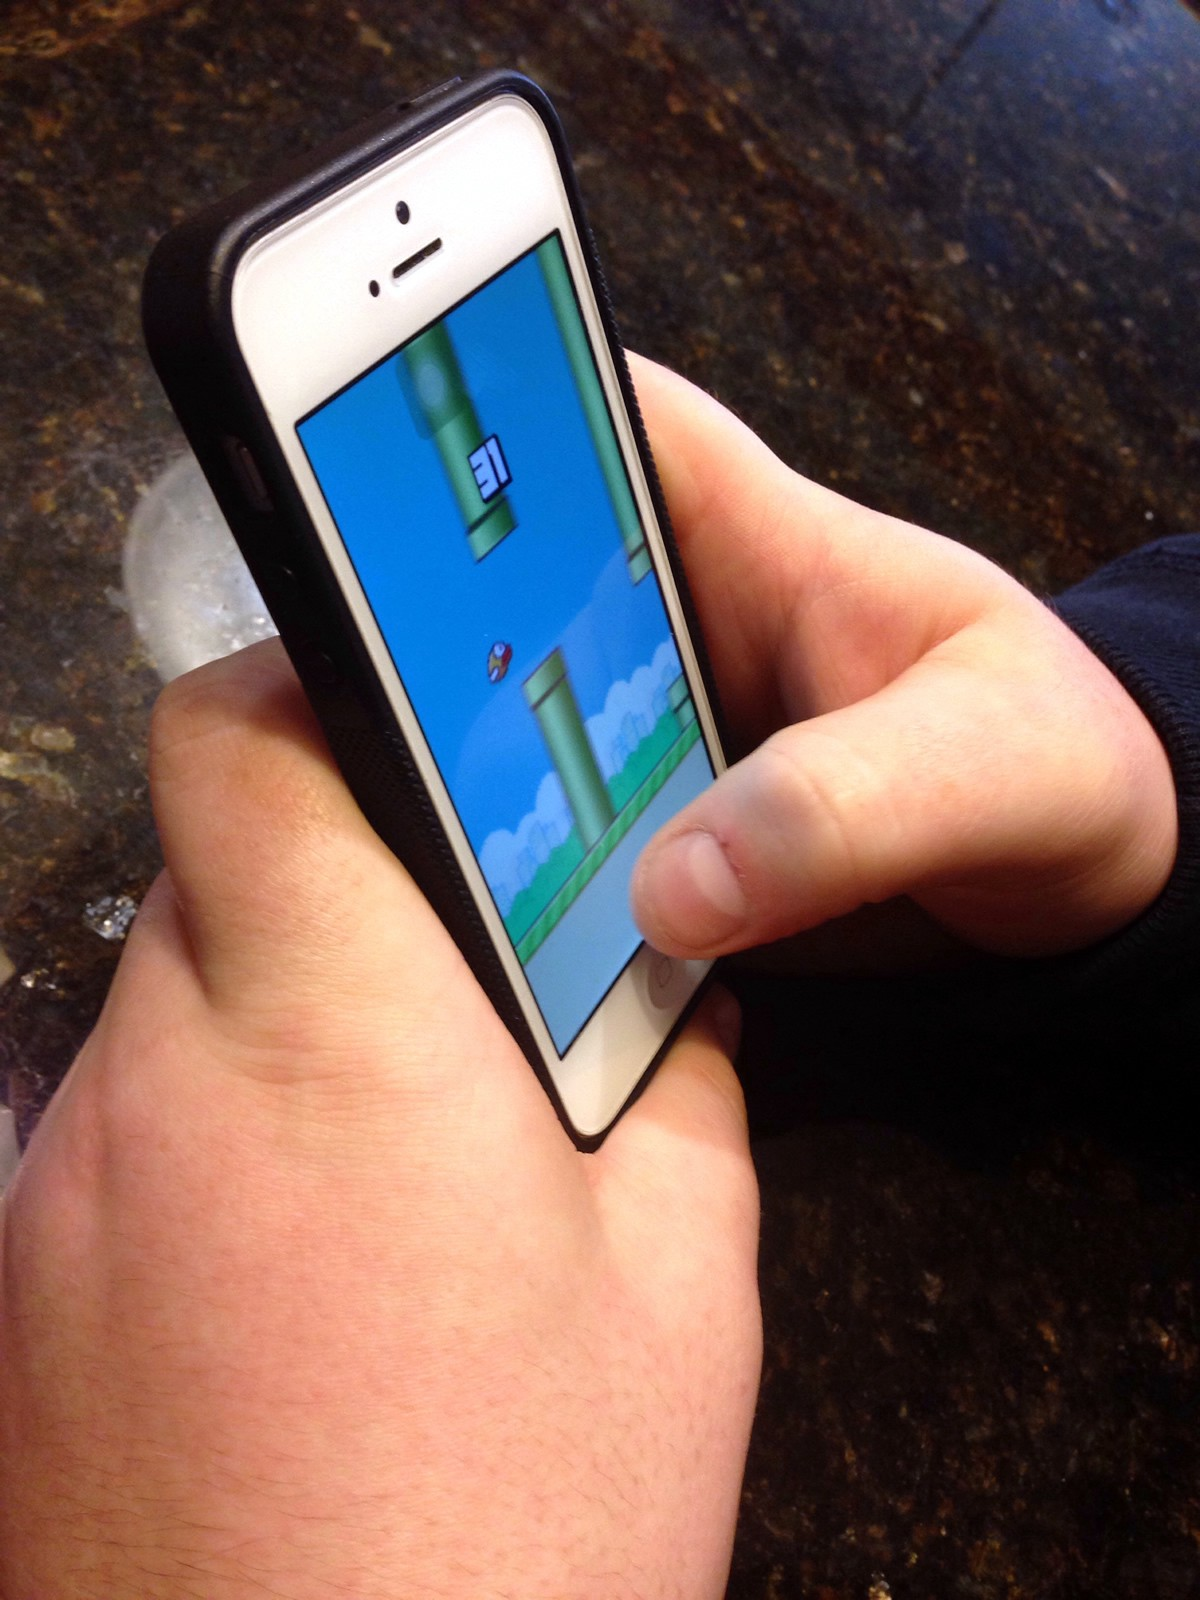 How to Design a Mobile Game So Addictive It's Almost Irresponsible